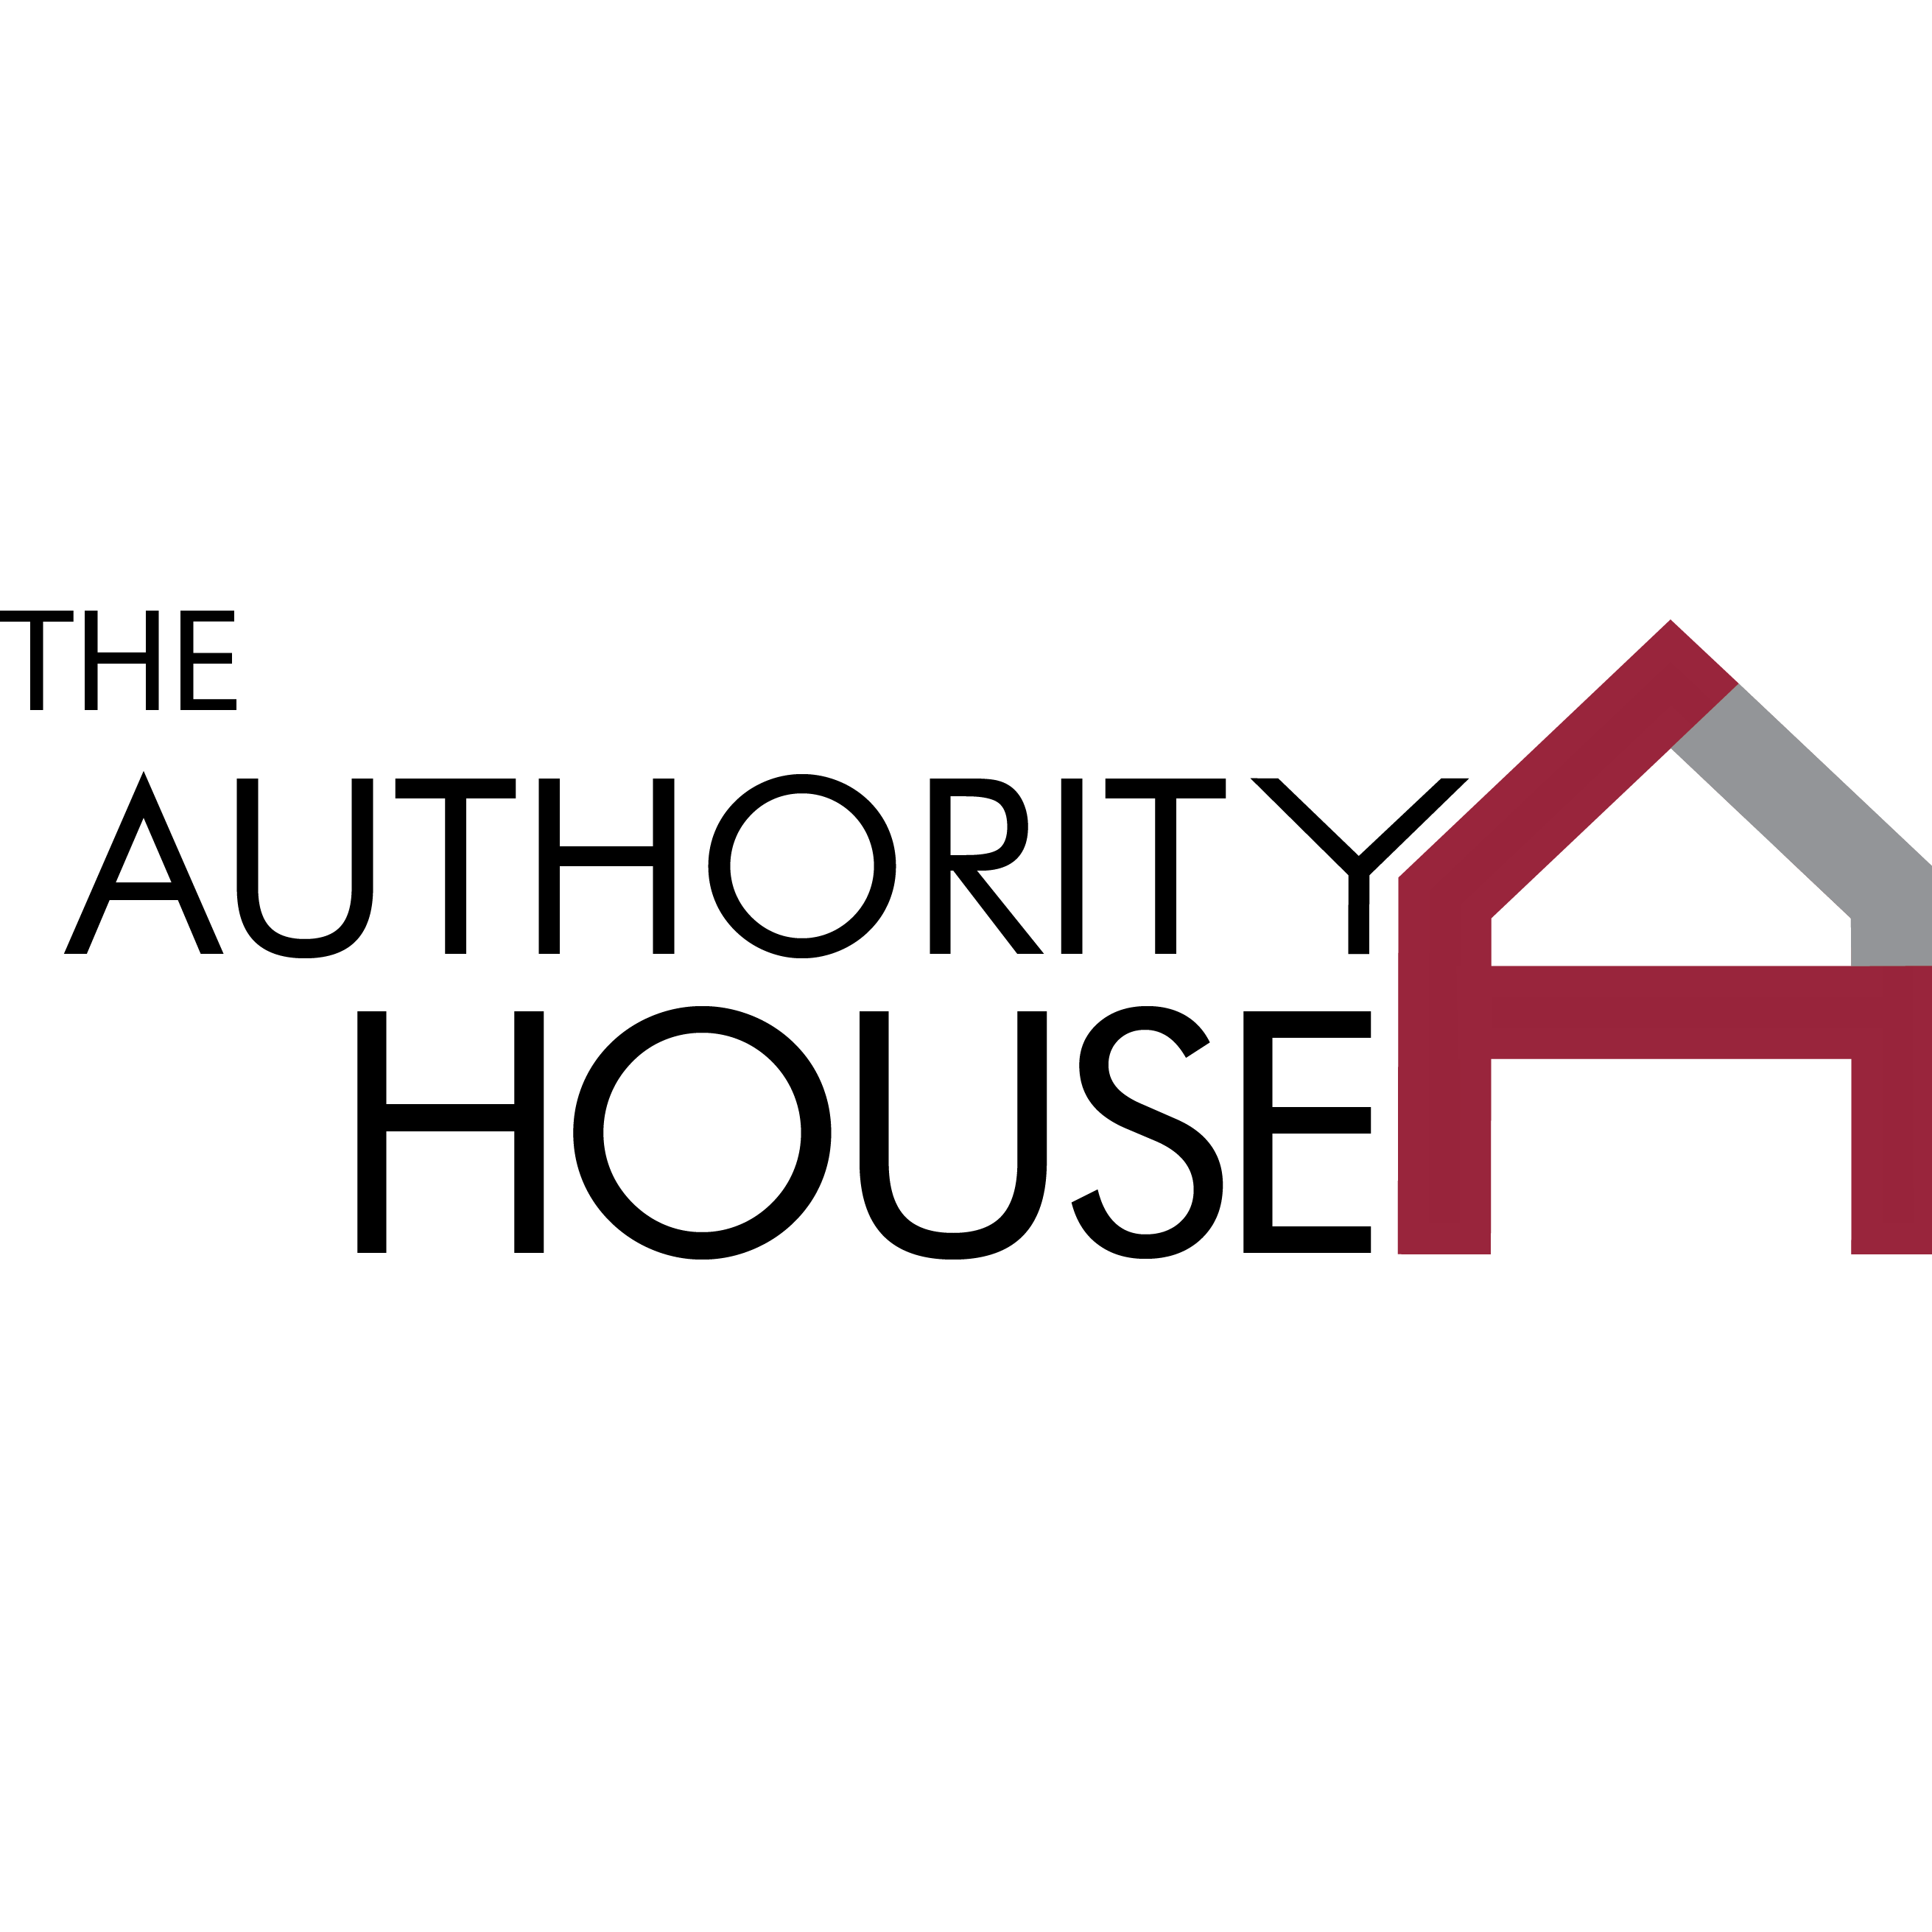 The Authority House